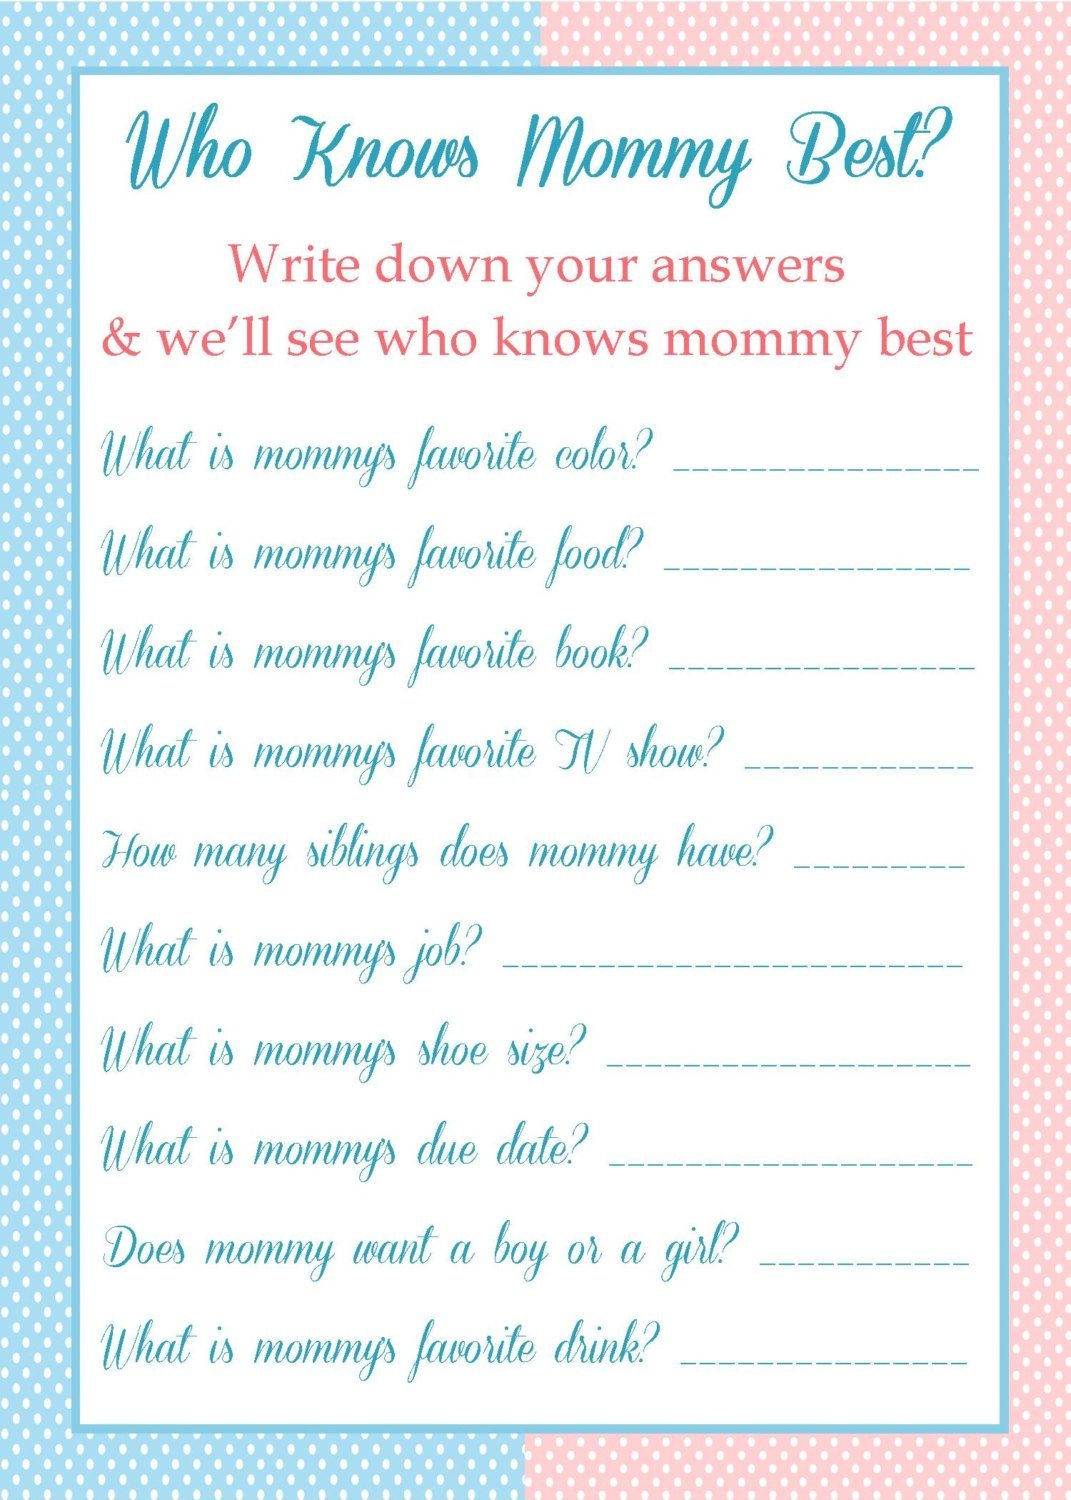 Who Knows Mommy Best - Baby Shower Game - $5.00 - Free Printable Baby Shower Games Who Knows Mommy The Best